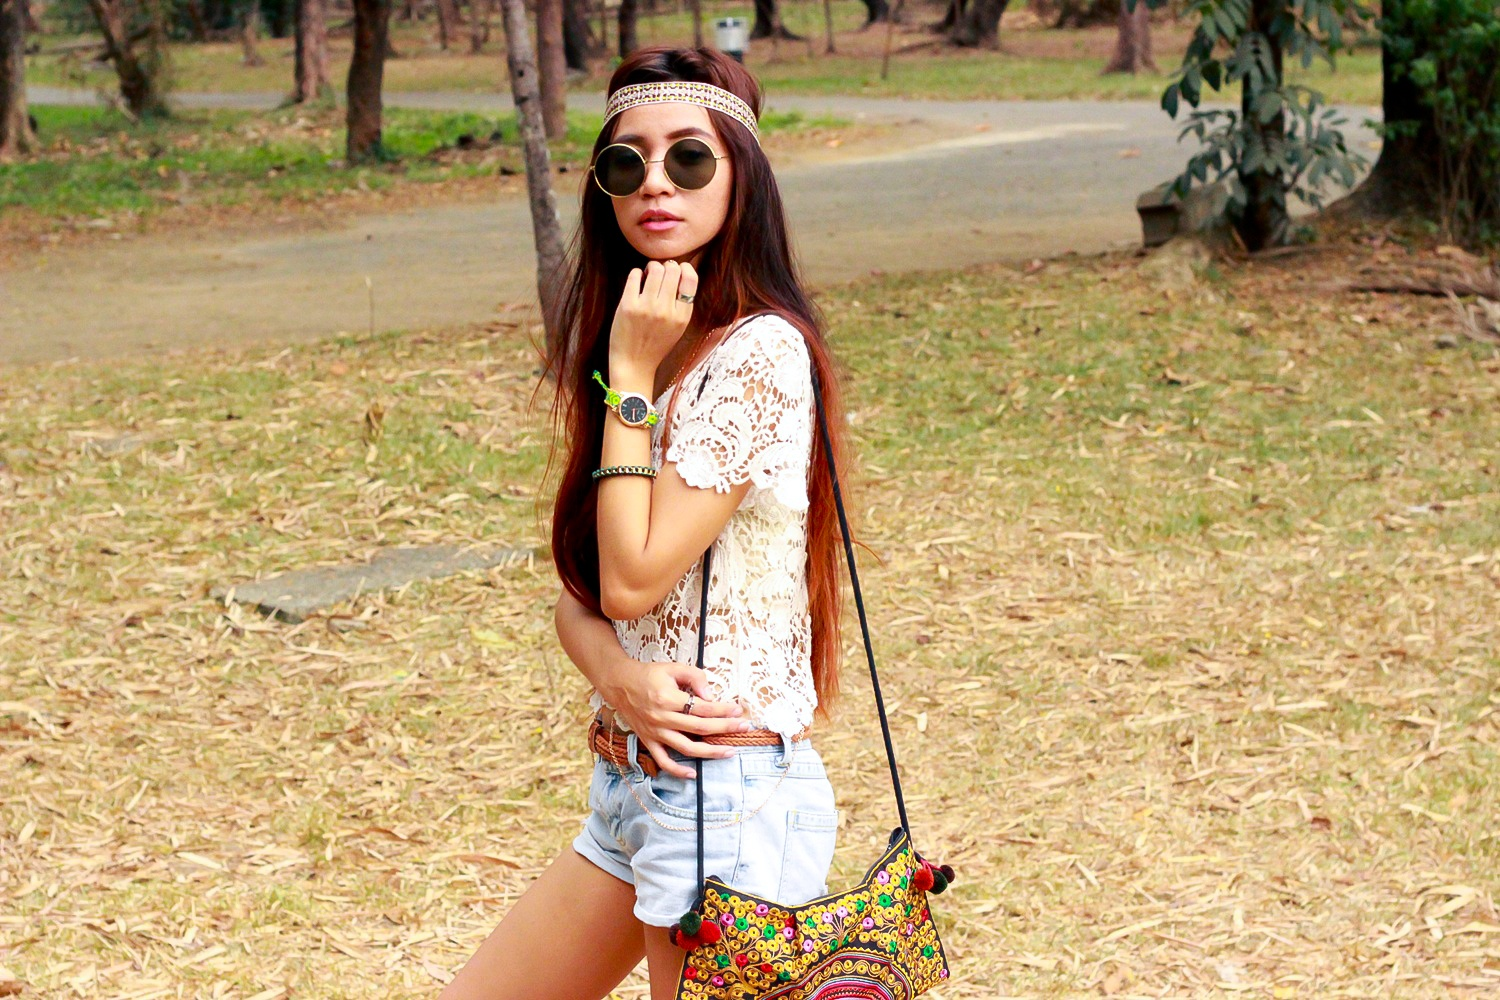 body-chain-fashion-born-pretty-store-thailand-bohemain-bags-teepee-shop-boho-headpiece-feathers-and-fancy-woven-watch-tali-philippines-filipina-fashion-blogger-06.jpg